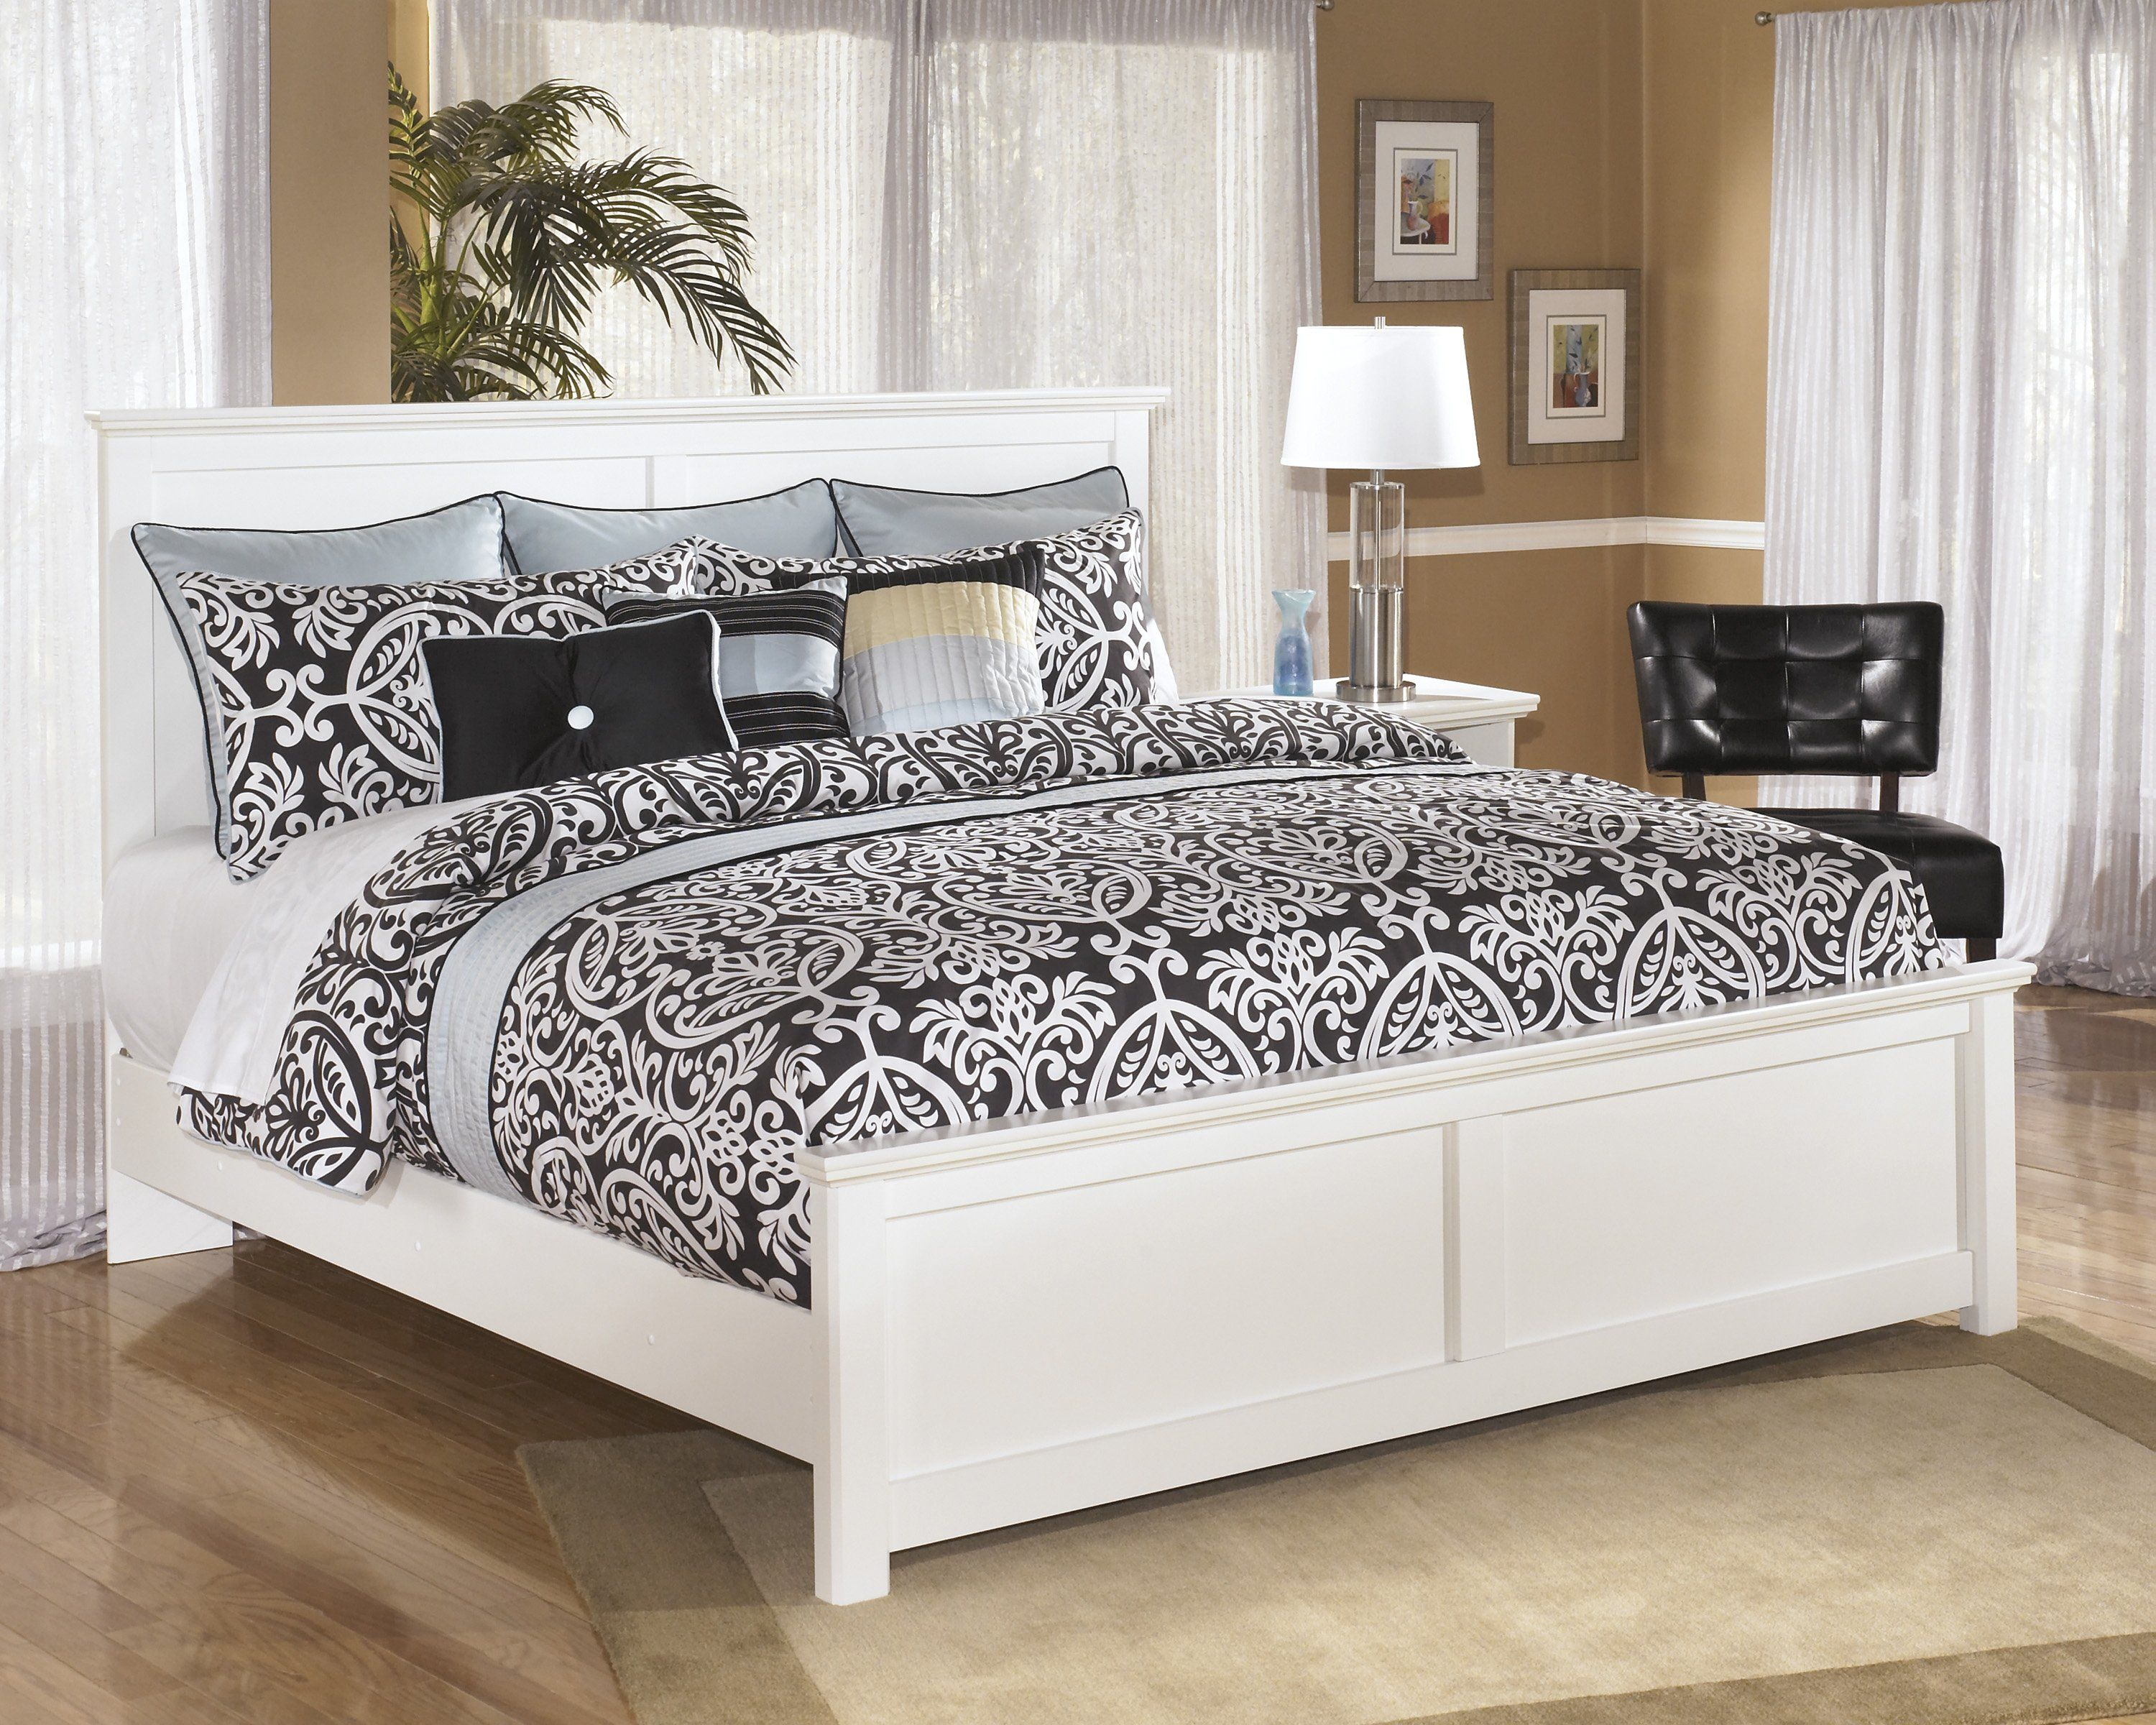 Photo of Bostwick Shoals White King Panel Bed